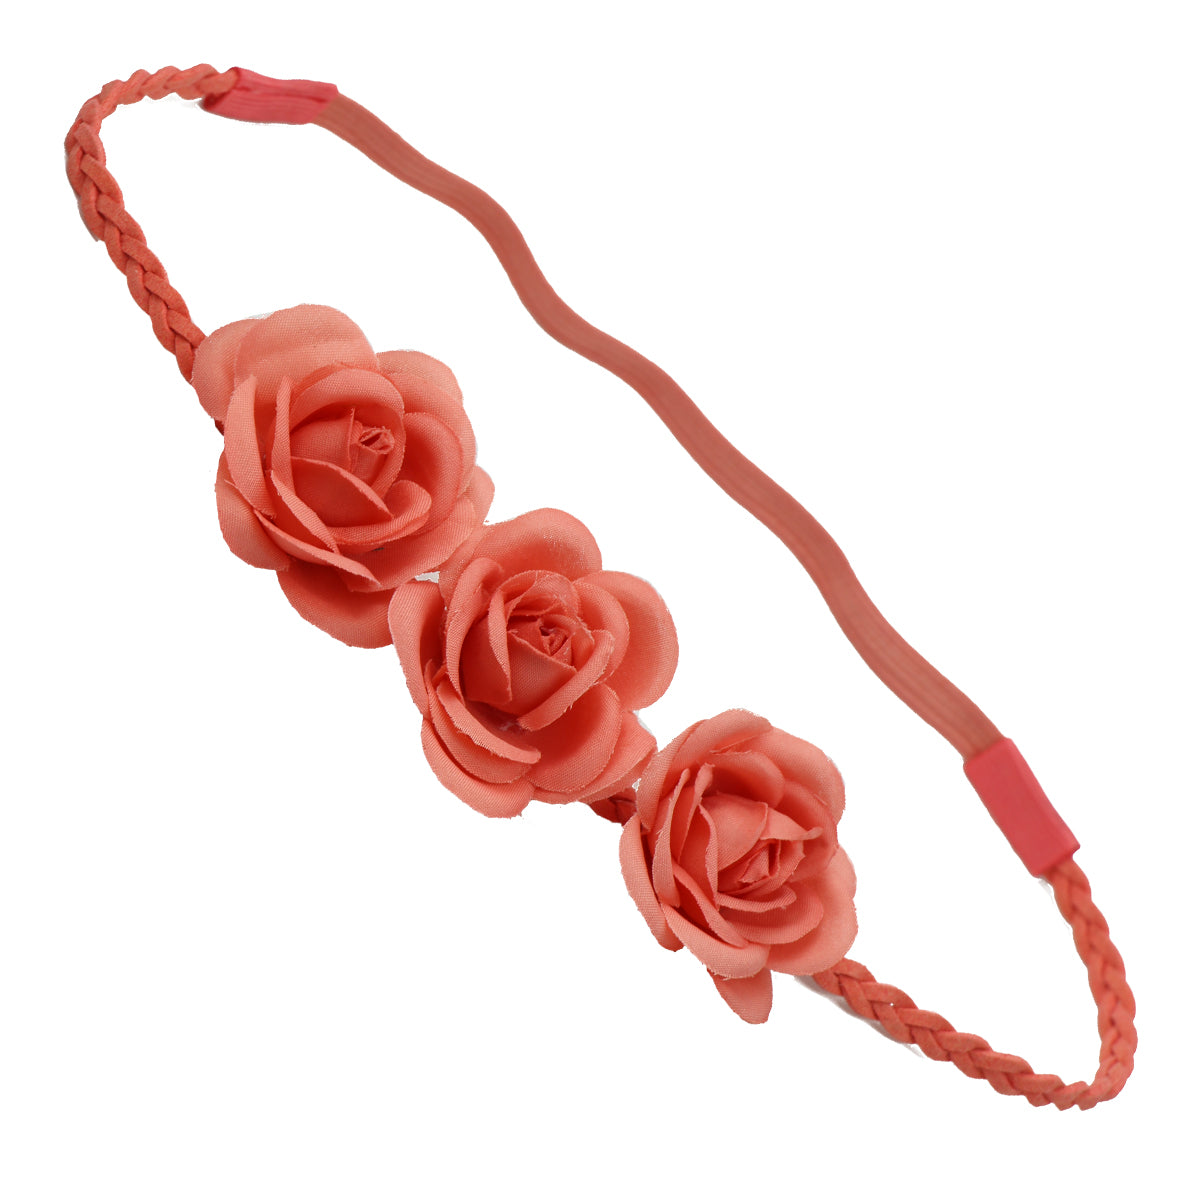 Three Orange Rose Flower Braided Leather Headband Flower Crown flower halo headband wreath 0417 - SOHOBUCKS CO.,LIMITED